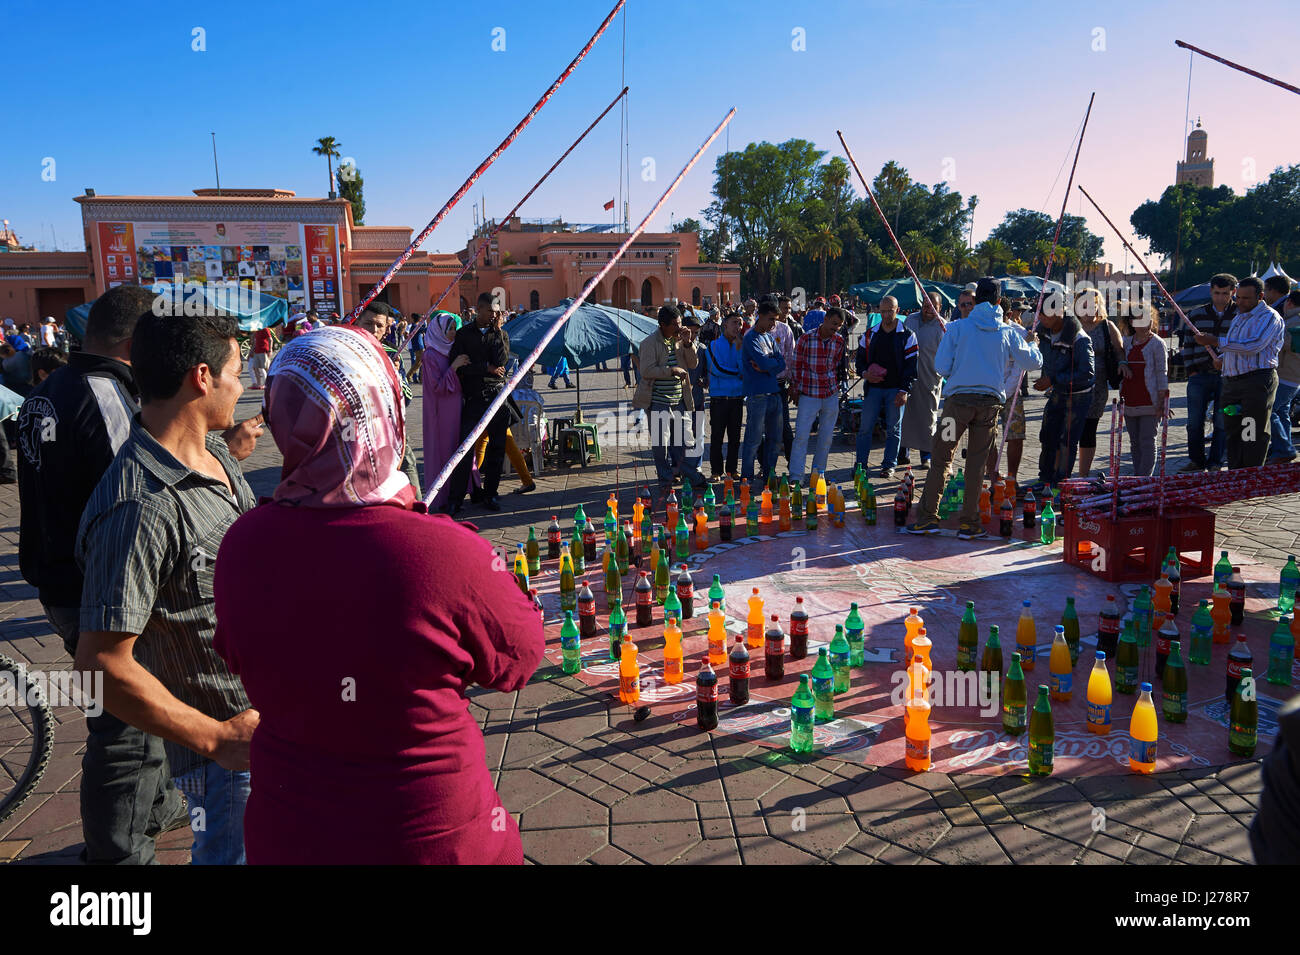 People relaxing in the Jemaa el-Fnaa square in  Marrakech, Morocco - Stock Image